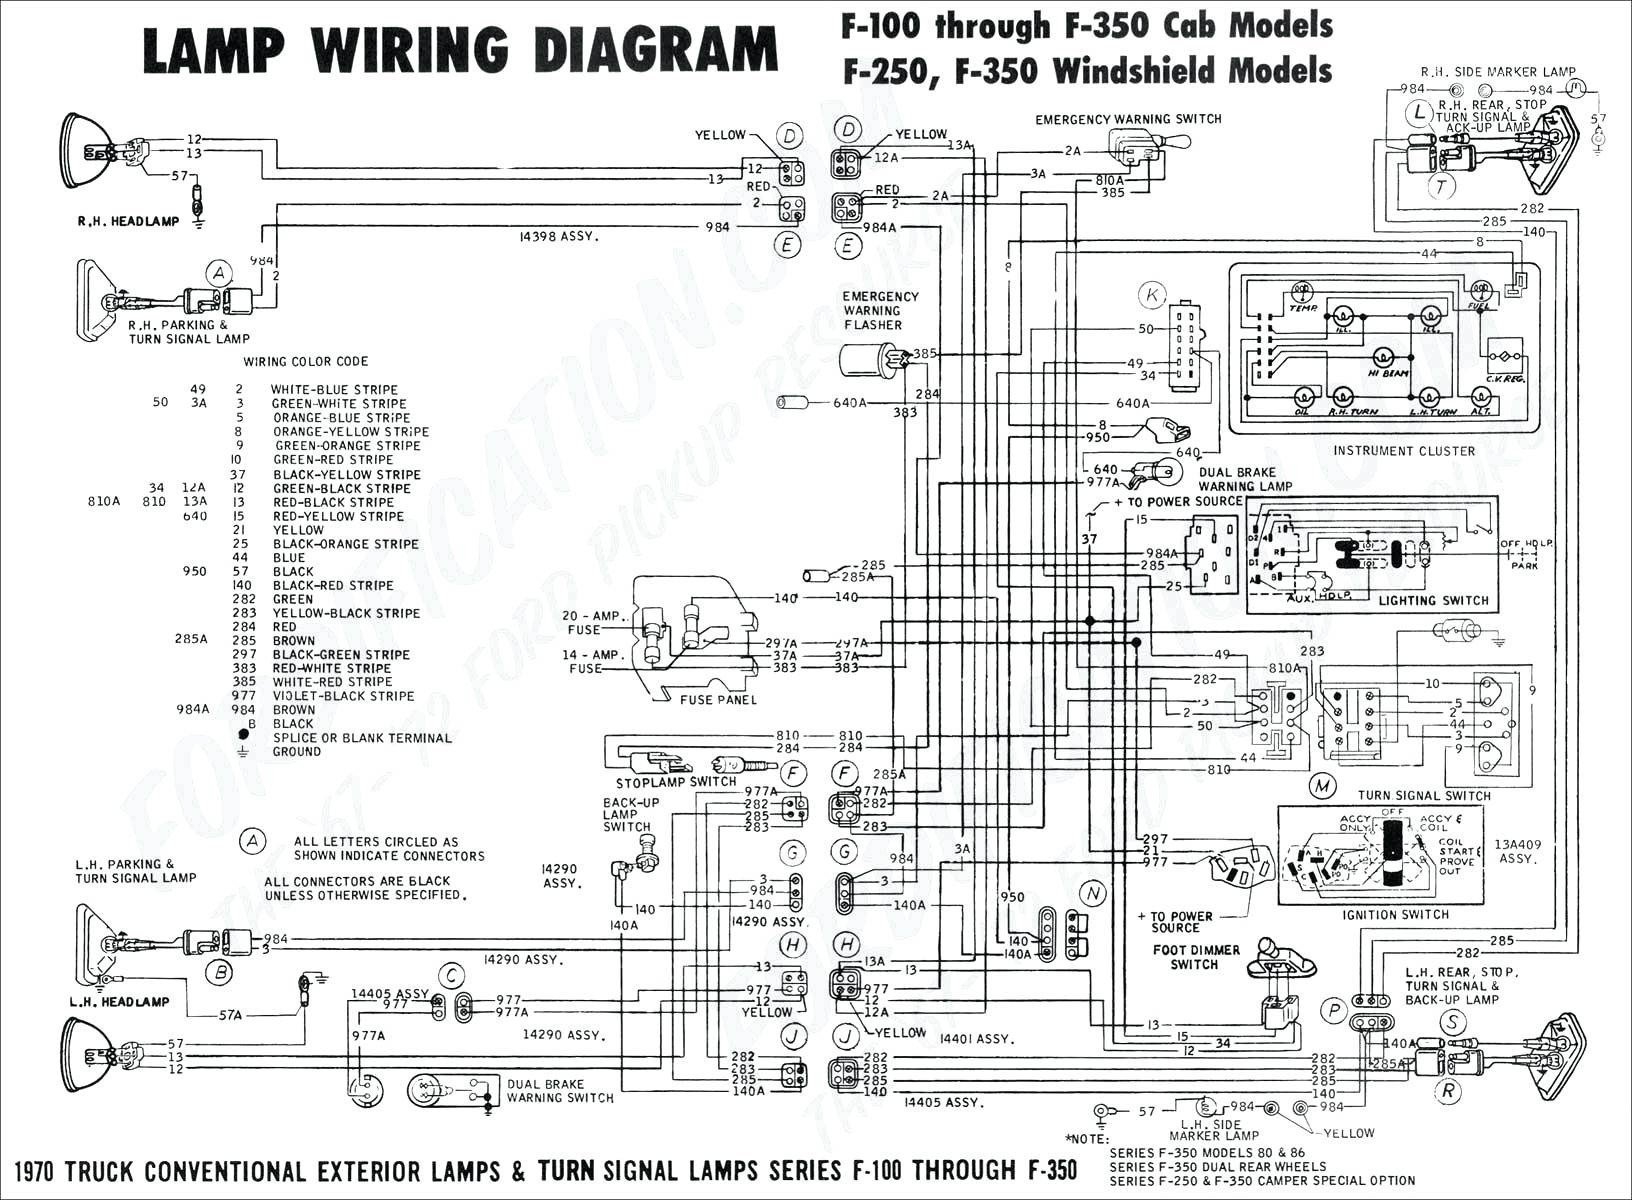 hight resolution of 94 ford taurus wiring diagram wiring diagram centre 1994 ford taurus power window wiring diagram 1994 ford taurus wiring diagram